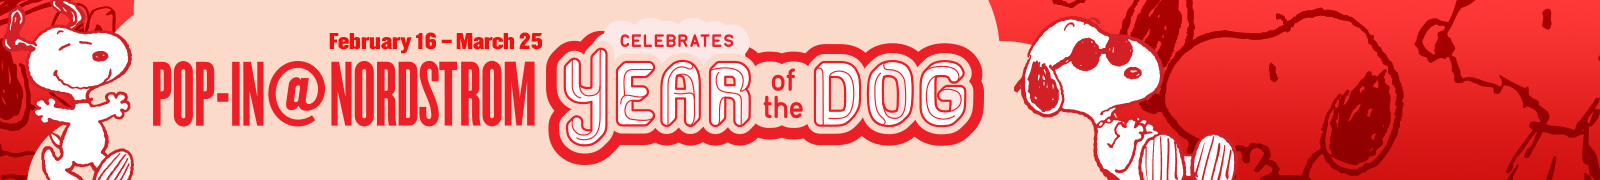 Pop In Nordstrom Celebrates Year Of The Dog February 16 March 25